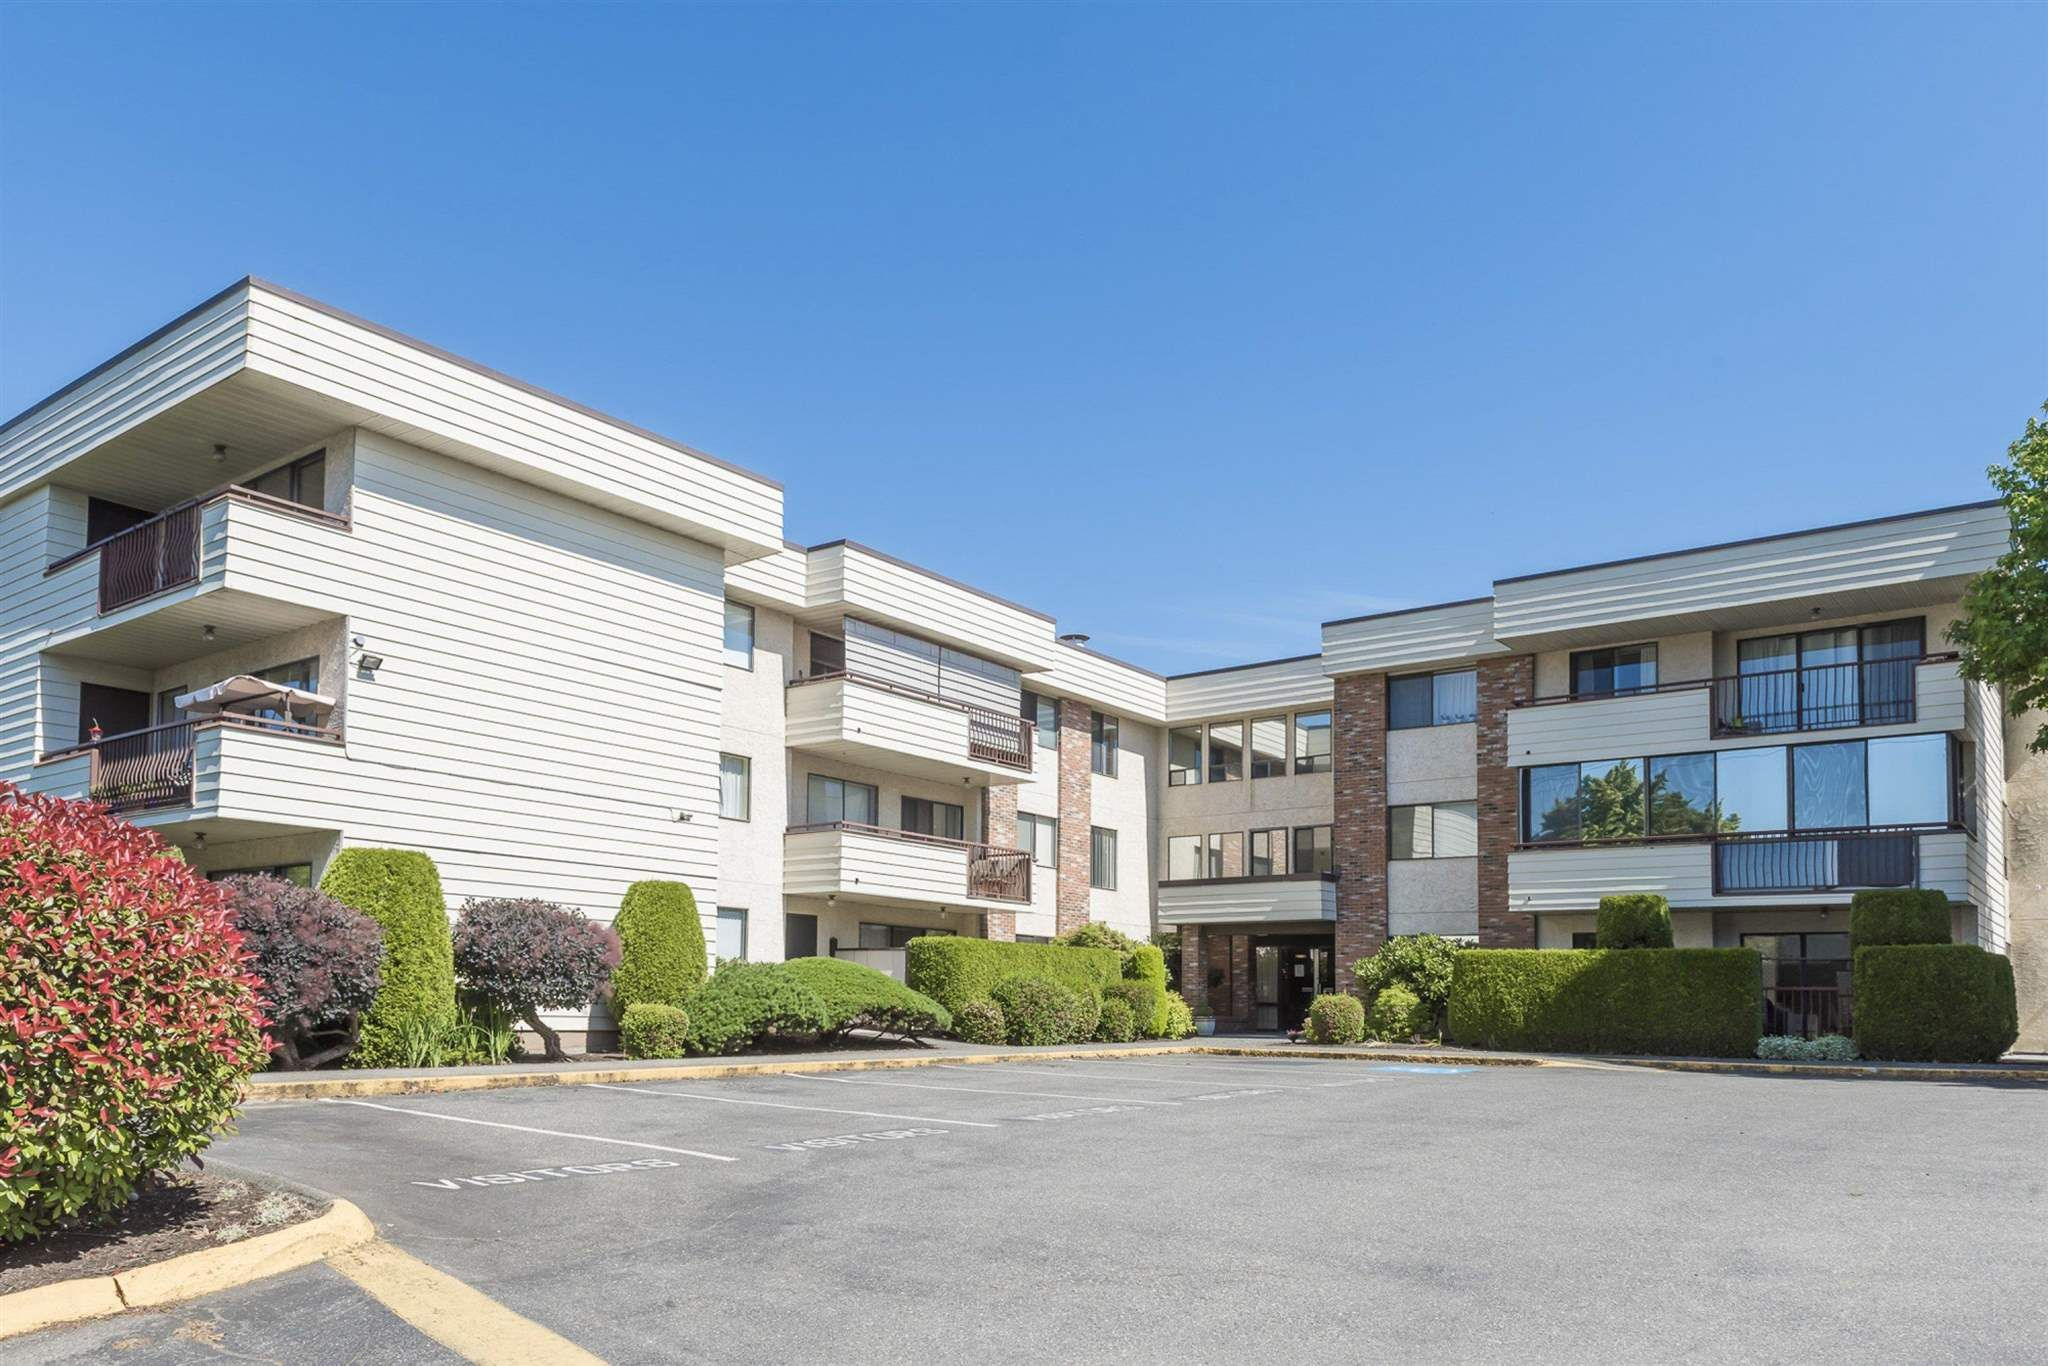 """Main Photo: 210 32885 GEORGE FERGUSON Way in Abbotsford: Central Abbotsford Condo for sale in """"FAIRVIEW MANOR"""" : MLS®# R2596928"""